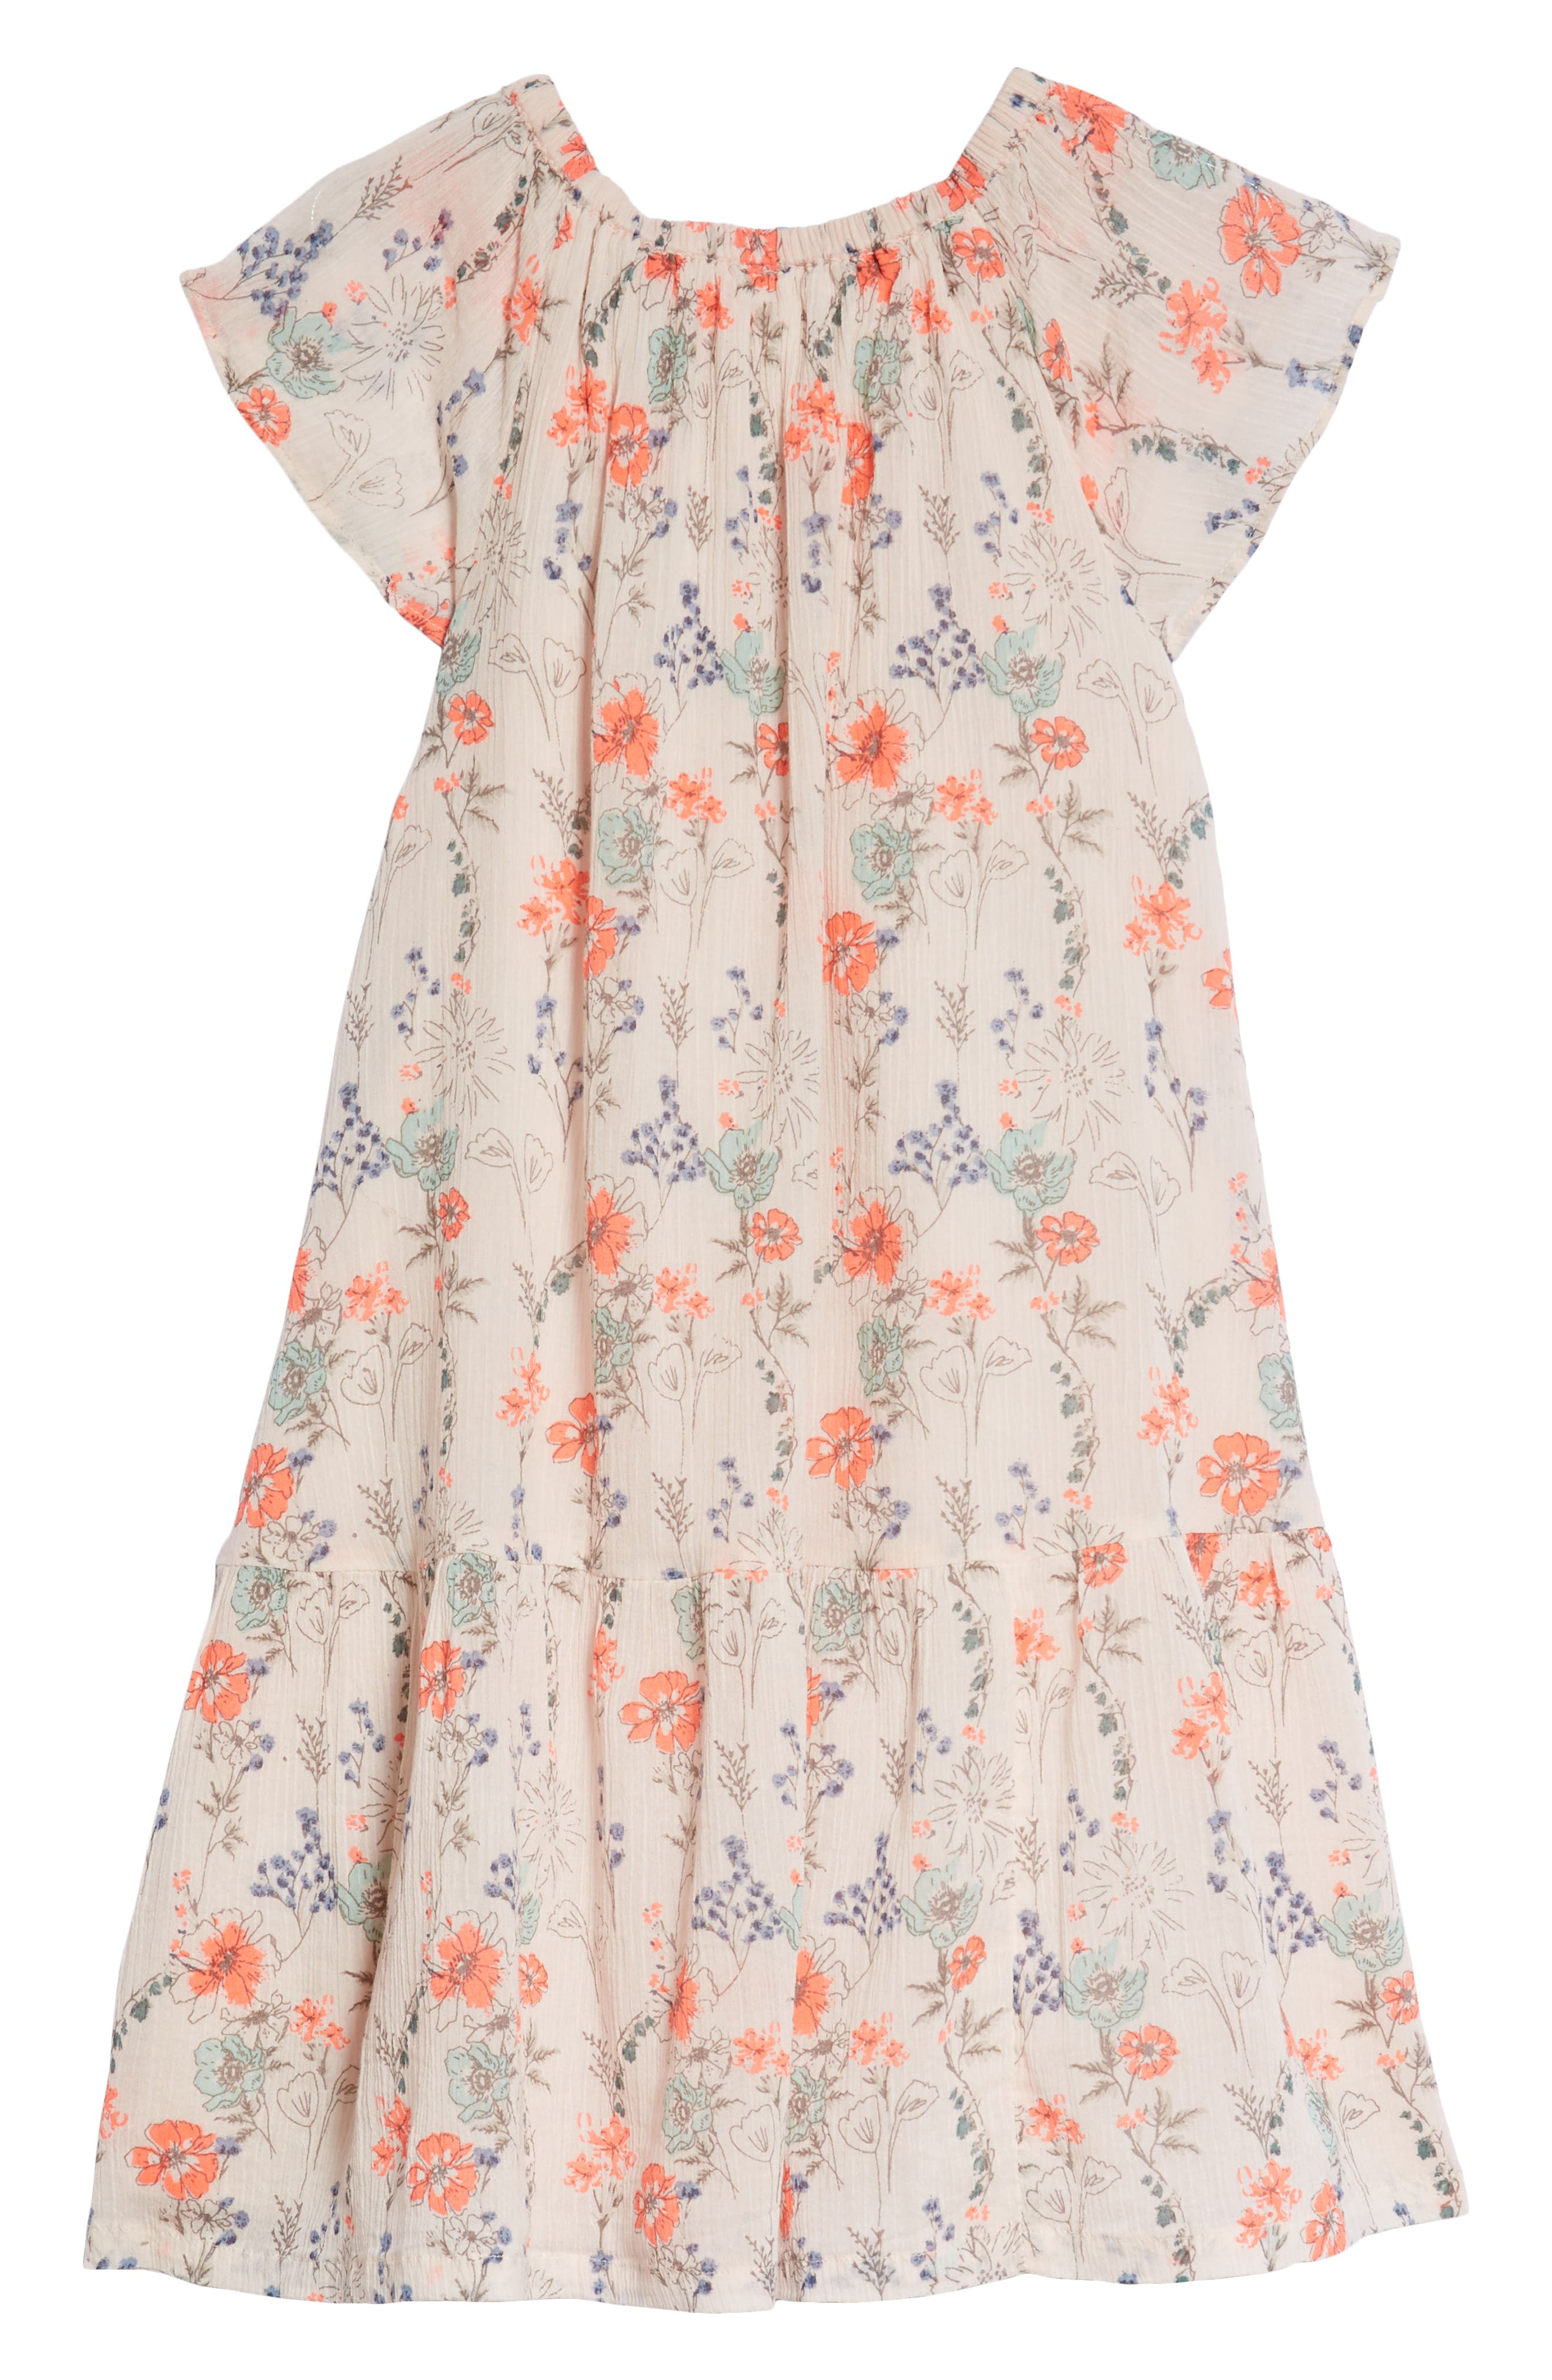 Floral Swing Dress,                             Alternate thumbnail 2, color,                             680